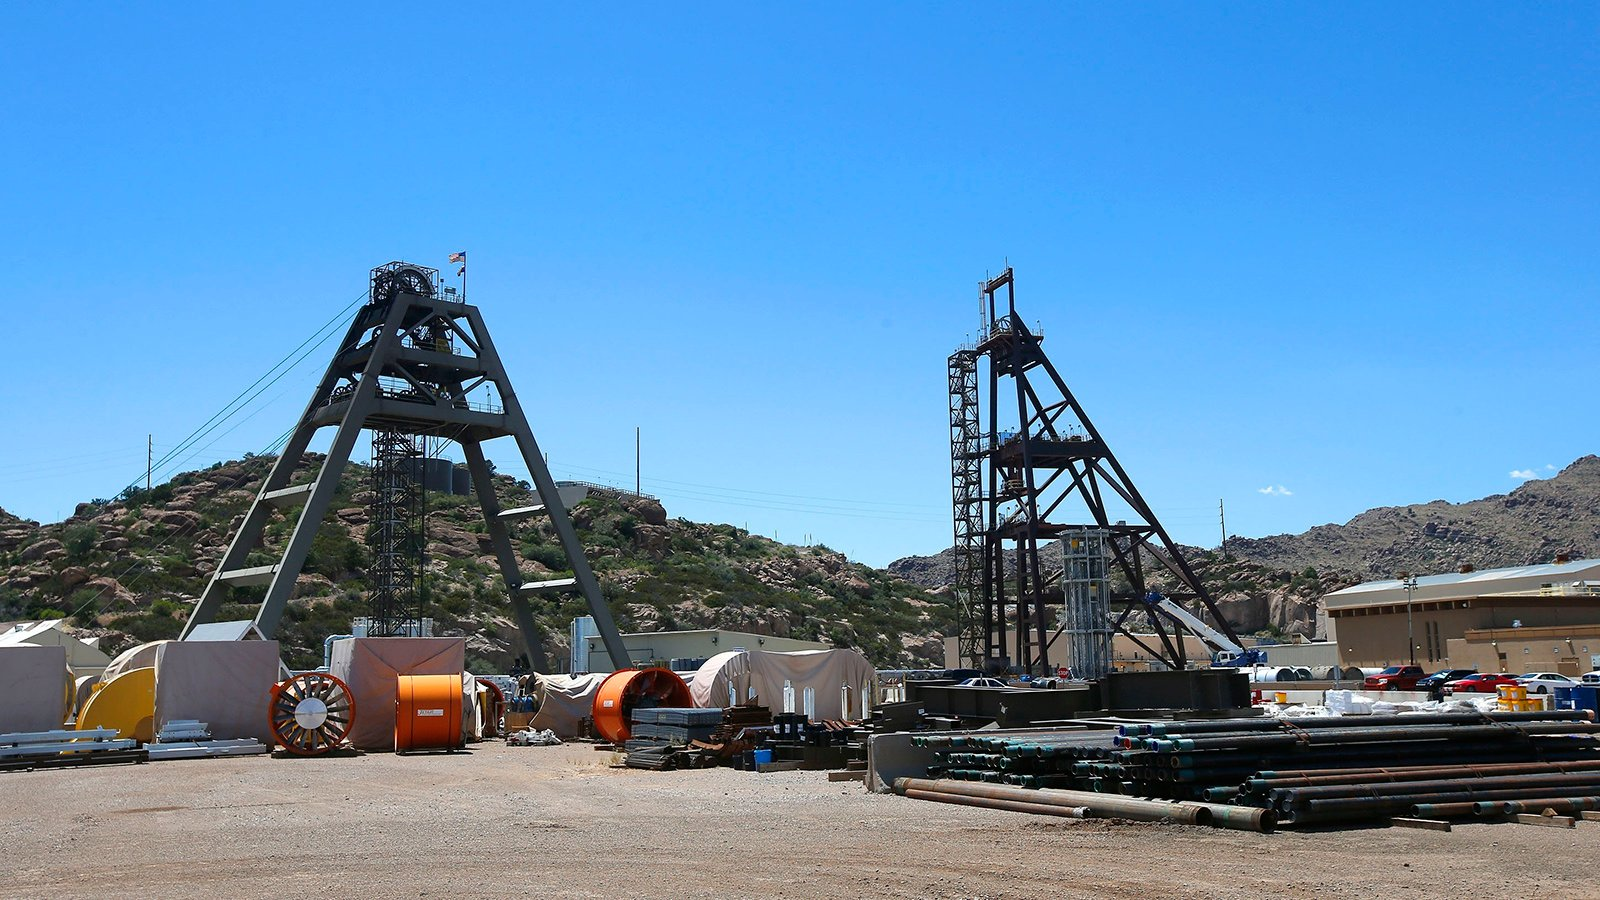 This file photo taken June 15, 2015, shows the Resolution Copper Mining area Shaft #9, right, and Shaft #10, left, that await the expansion go ahead in Superior, Ariz. The U.S. Forest Service released an environmental review Friday, Jan. 15, 2021, that paves the way for the creation of one of the largest copper mines in the United States, against the wishes of a group of Apaches who have been trying for years to stop the project. The mountainous land near Superior is known as Oak Flat or Chi'chil Bildagoteel. It's where Apaches have harvested medicinal plants, held coming-of-age ceremonies, and gathered acorns for generations. (AP Photo/Ross D. Franklin, File)